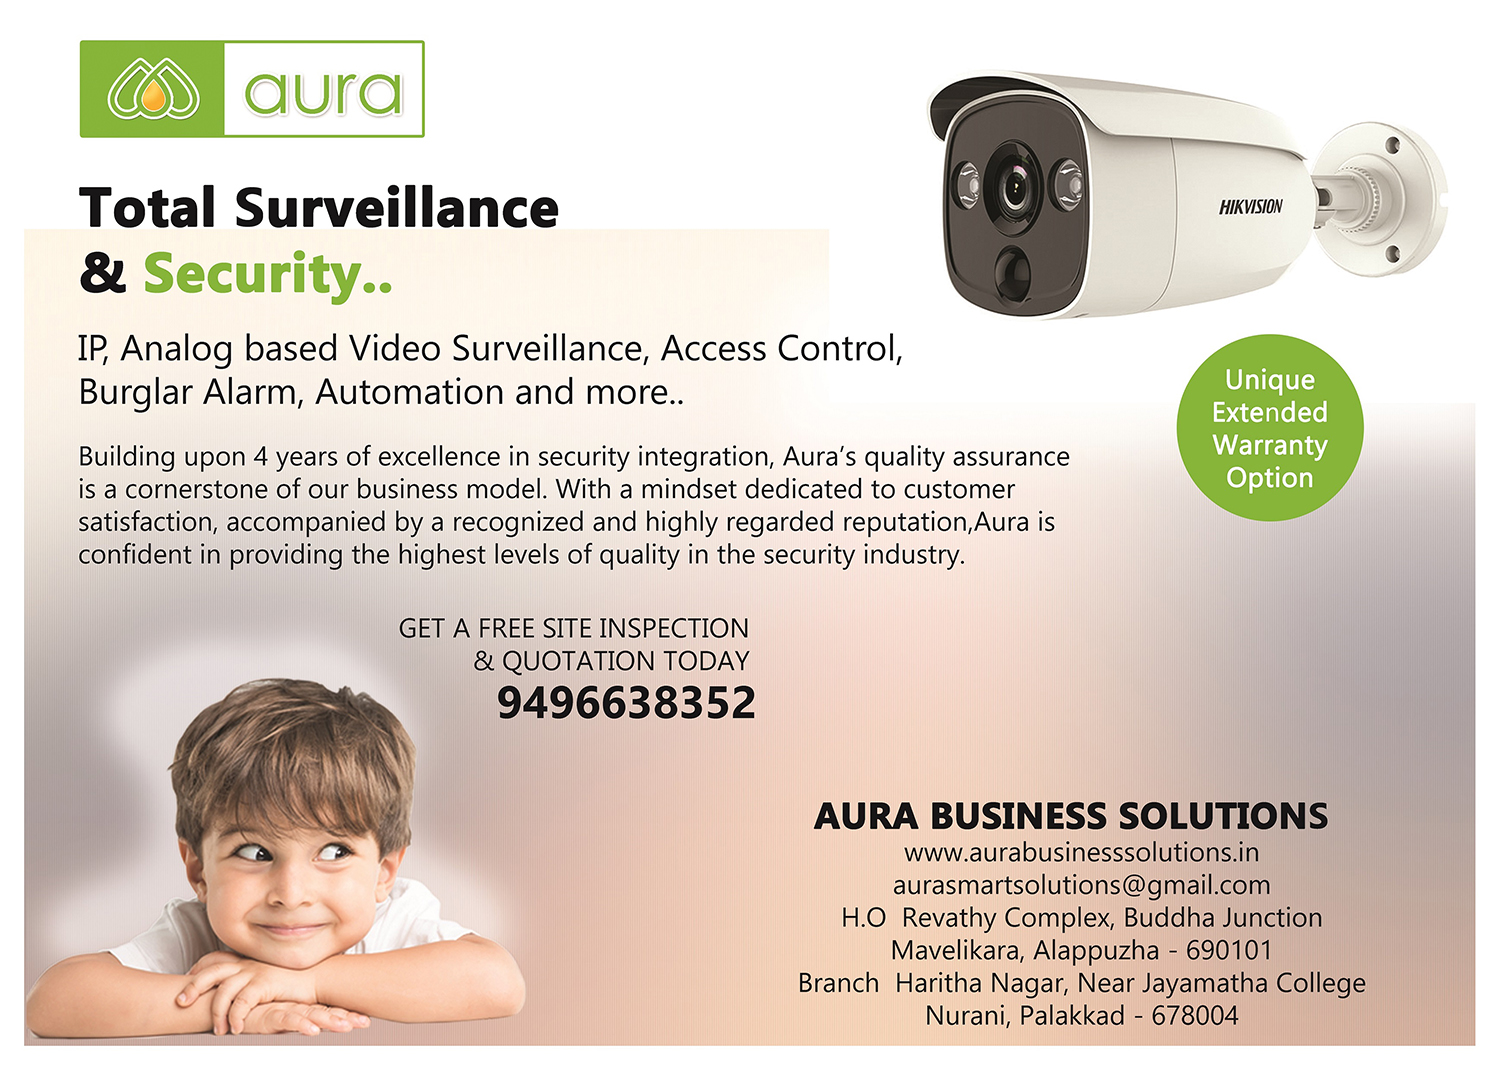 Image for Aura-CCTV Dealers, Supplier, CCTV Installation in Palakkad, Coimbatore